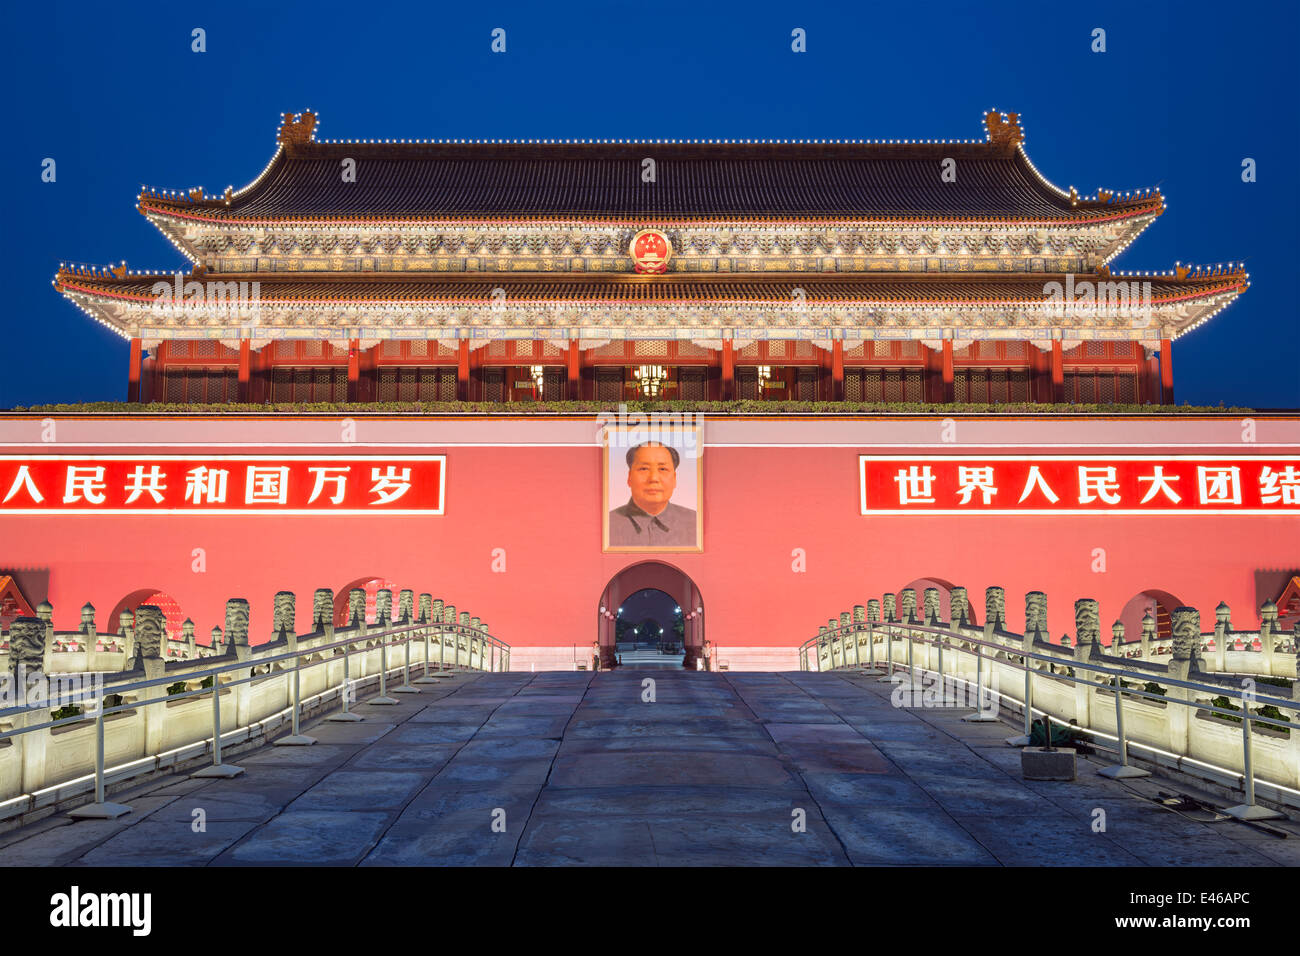 Tiananmen Square in Beijing, China. - Stock Image